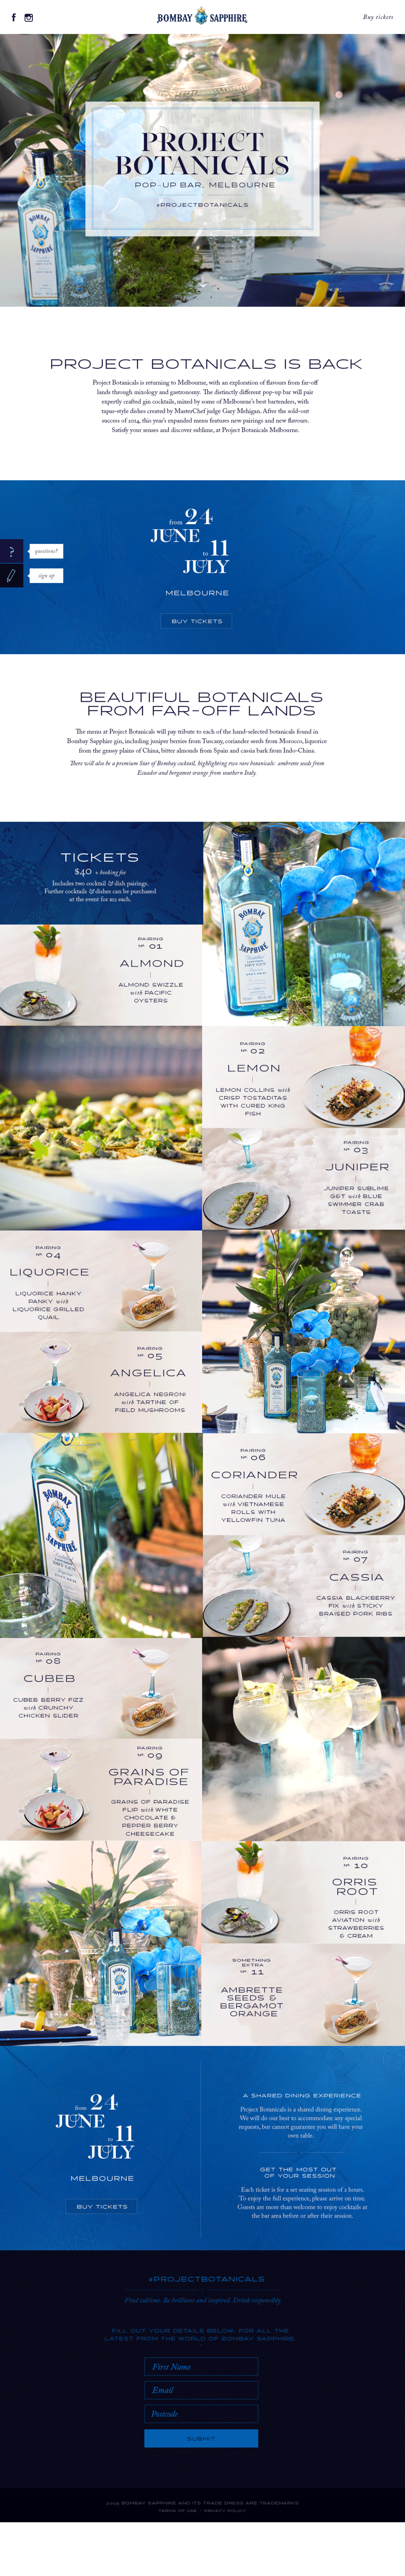 BombaySaphire_ProjectBotanicals_Microsite_Desktop_V03_MelbourneOnly_03_0000_01-The-Site.png